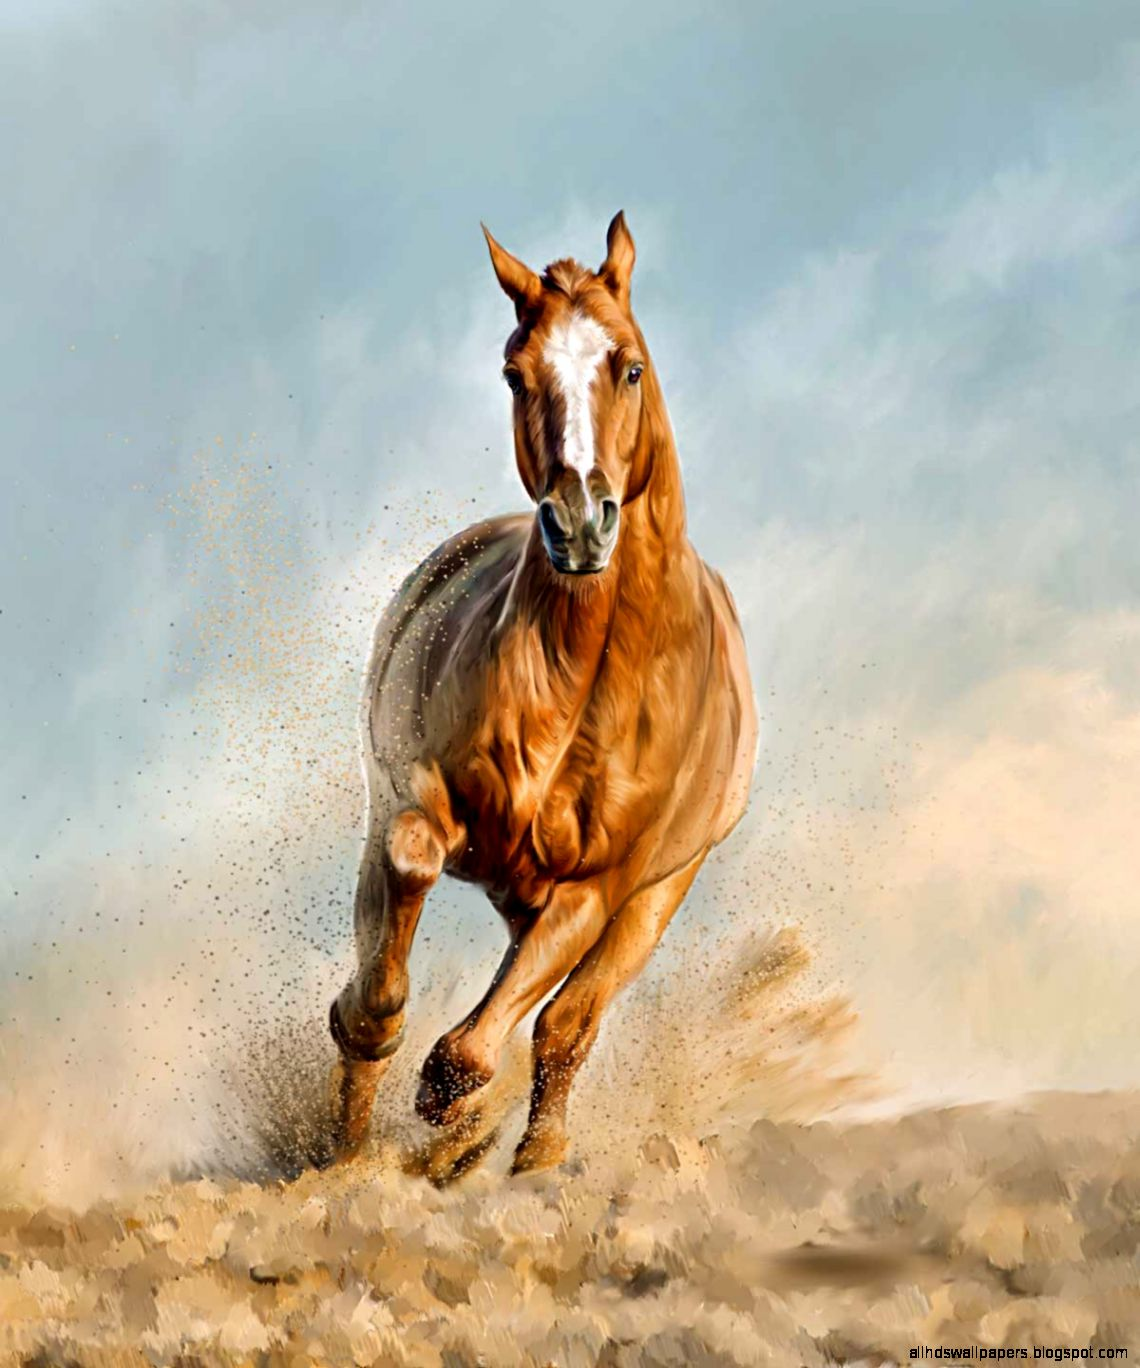 Cool   Wallpaper Horse Vintage - wonderful-horse-painting-1200x1520px-620394  Perfect Image Reference_44922.jpg